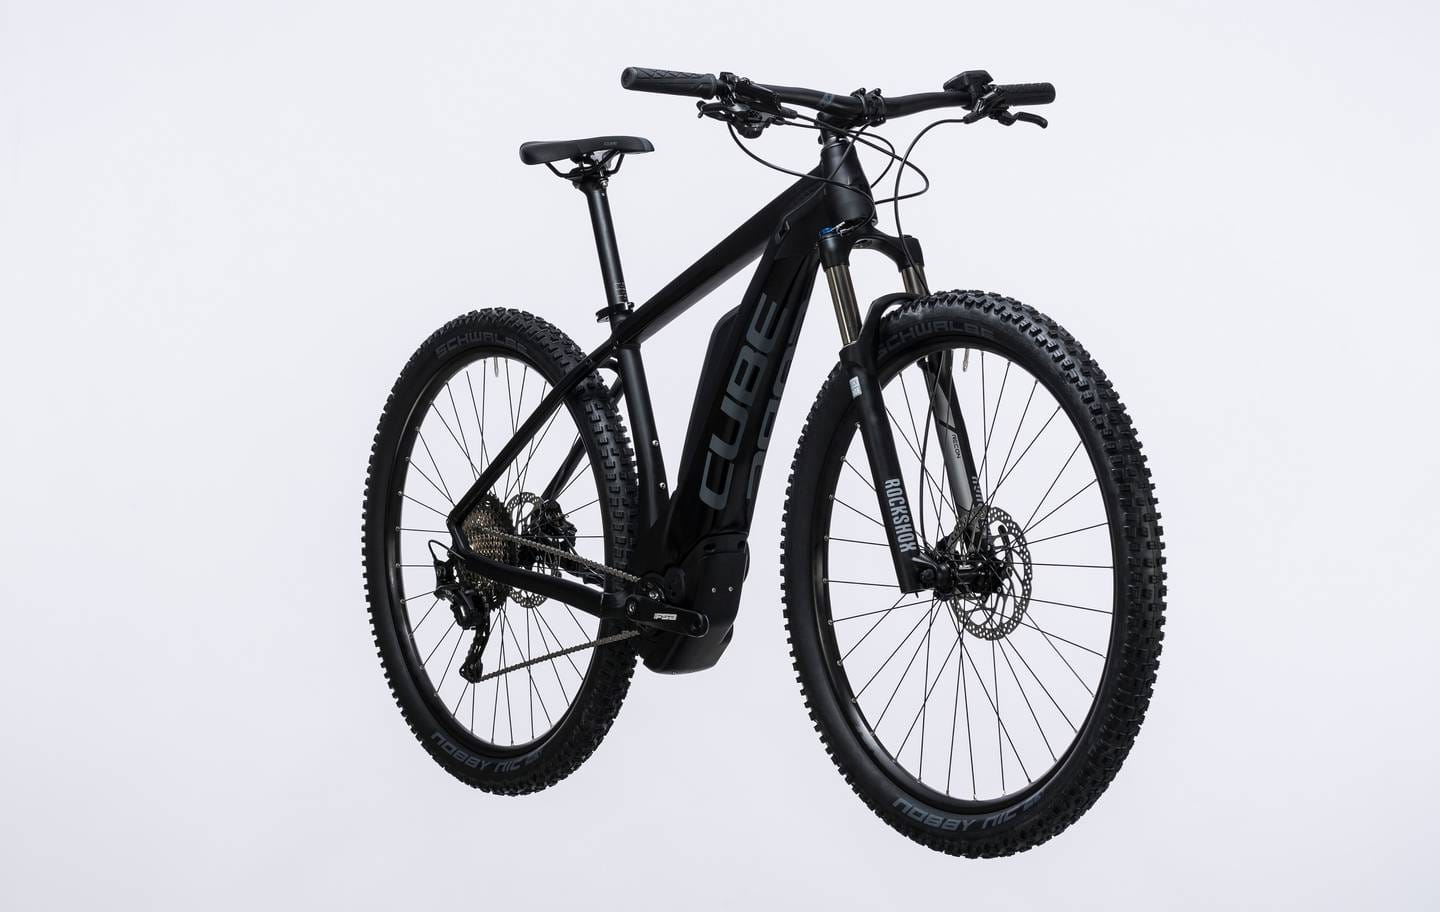 cube reaction hybrid hpa sl 500 29 hardtail e bike 2017 all terrain cycles. Black Bedroom Furniture Sets. Home Design Ideas